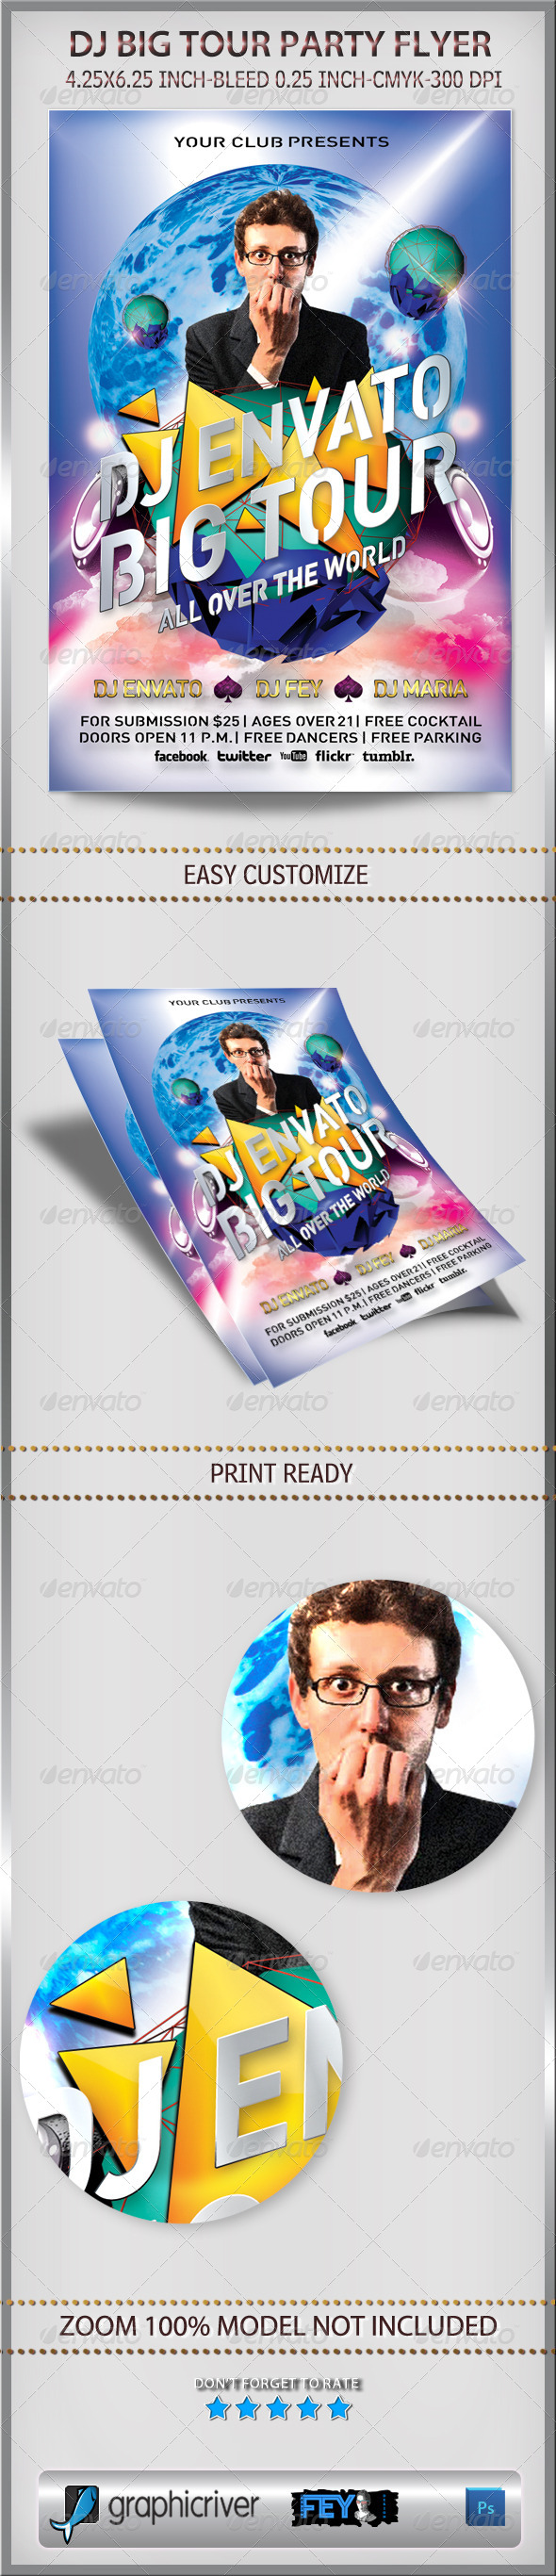 GraphicRiver Dj Big Tour Party Flyer 6317685